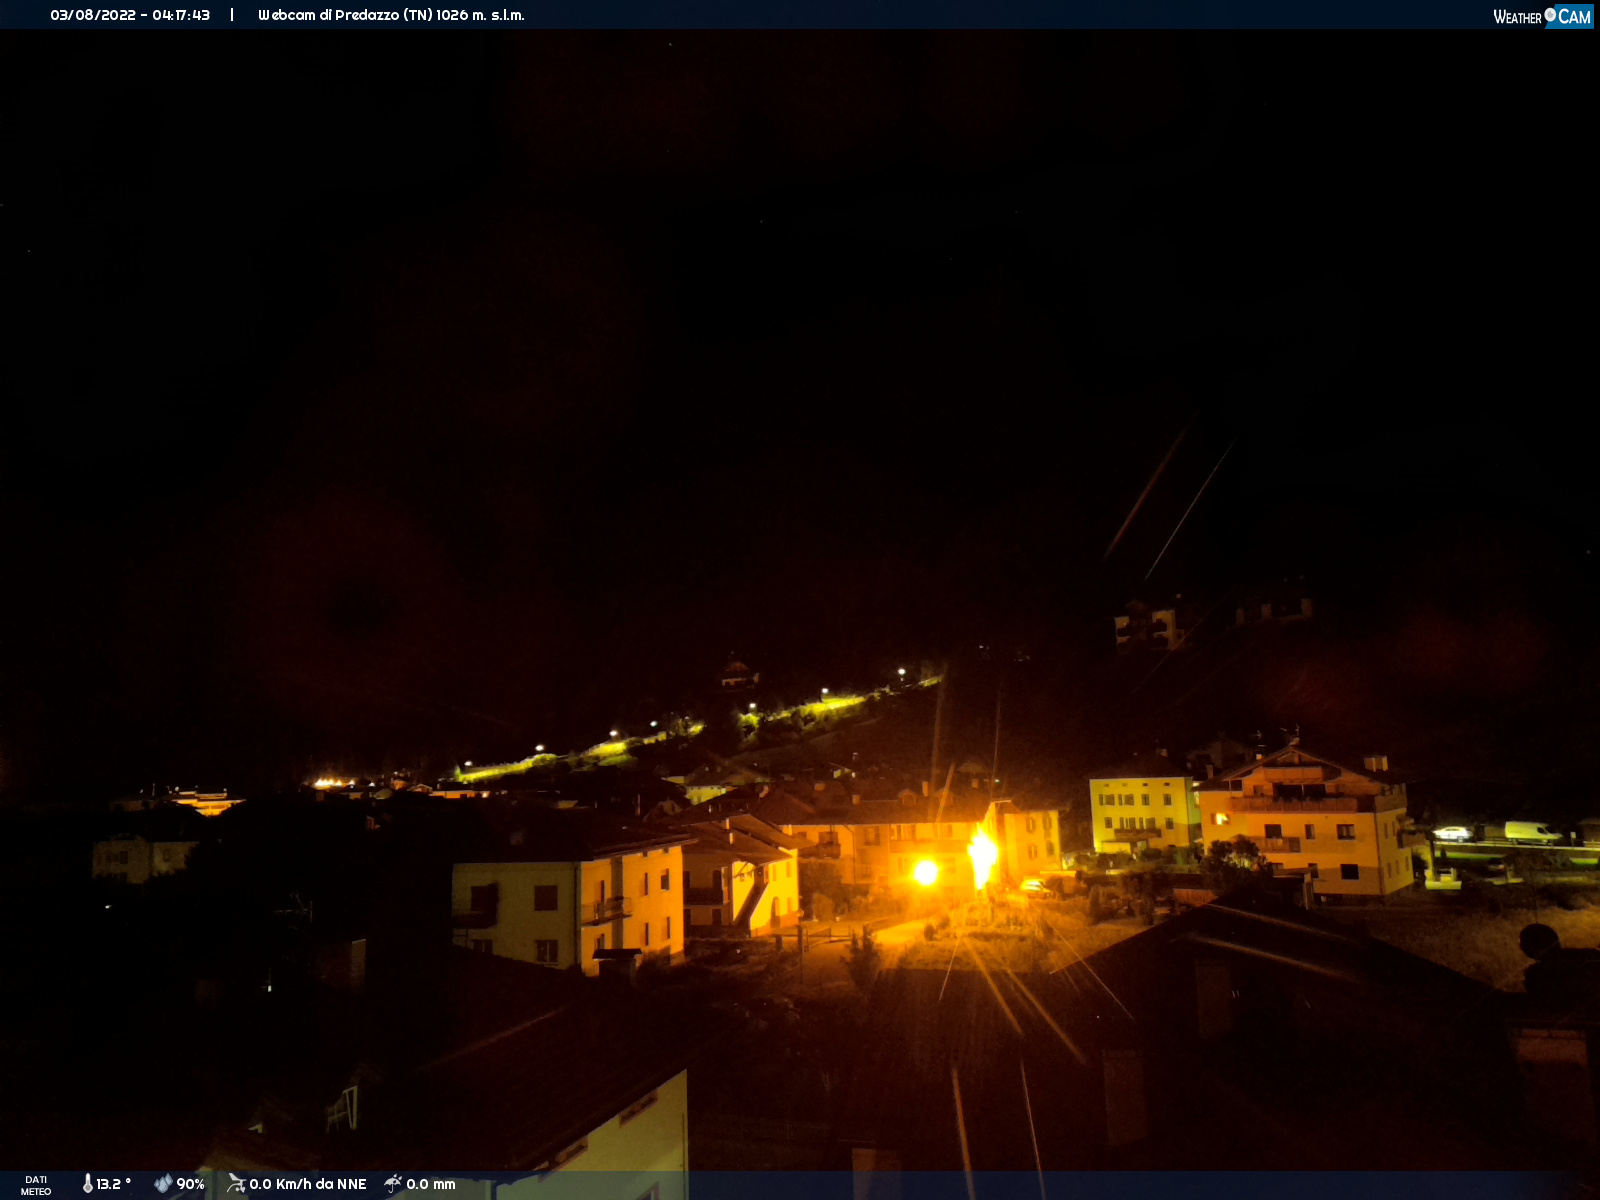 Webcam Meteo Predazzo